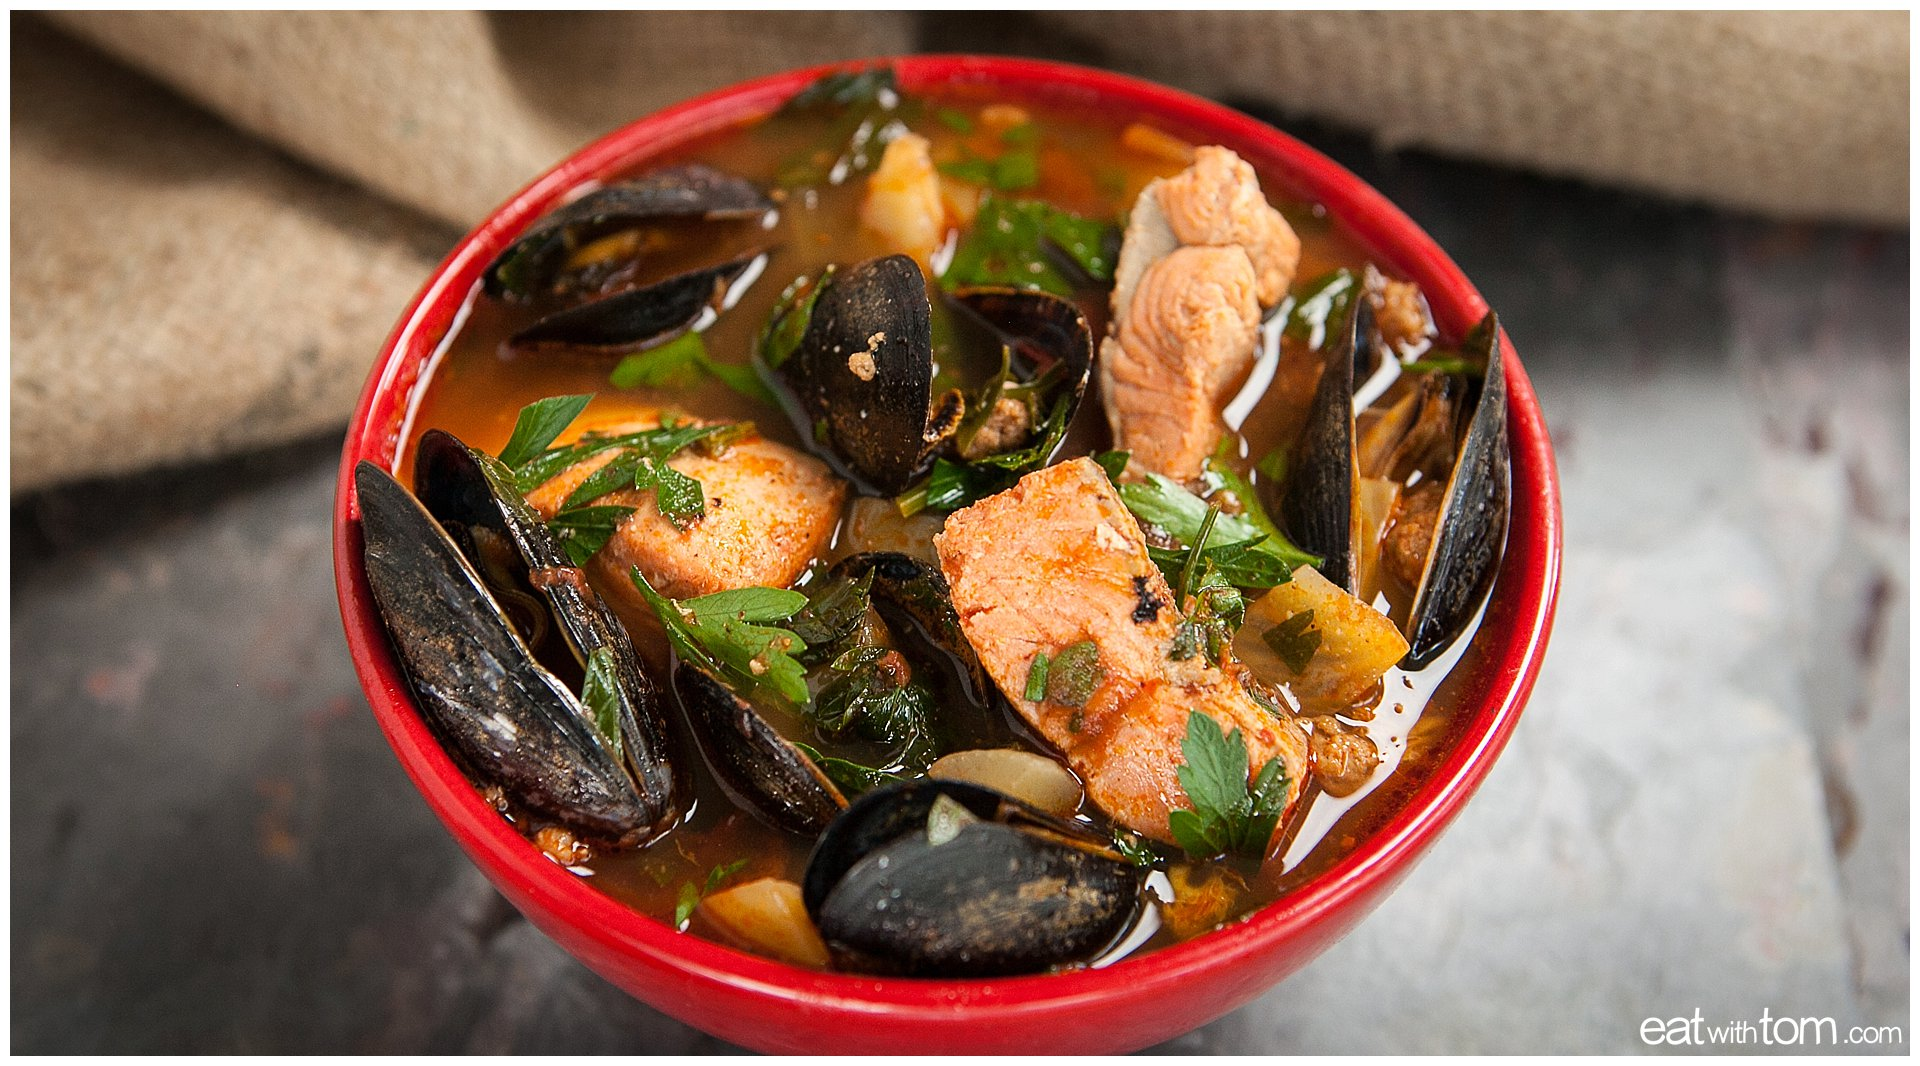 Seafood stew recipe in red bowl with mussels salmon and cilantro - tom schmidt photographer